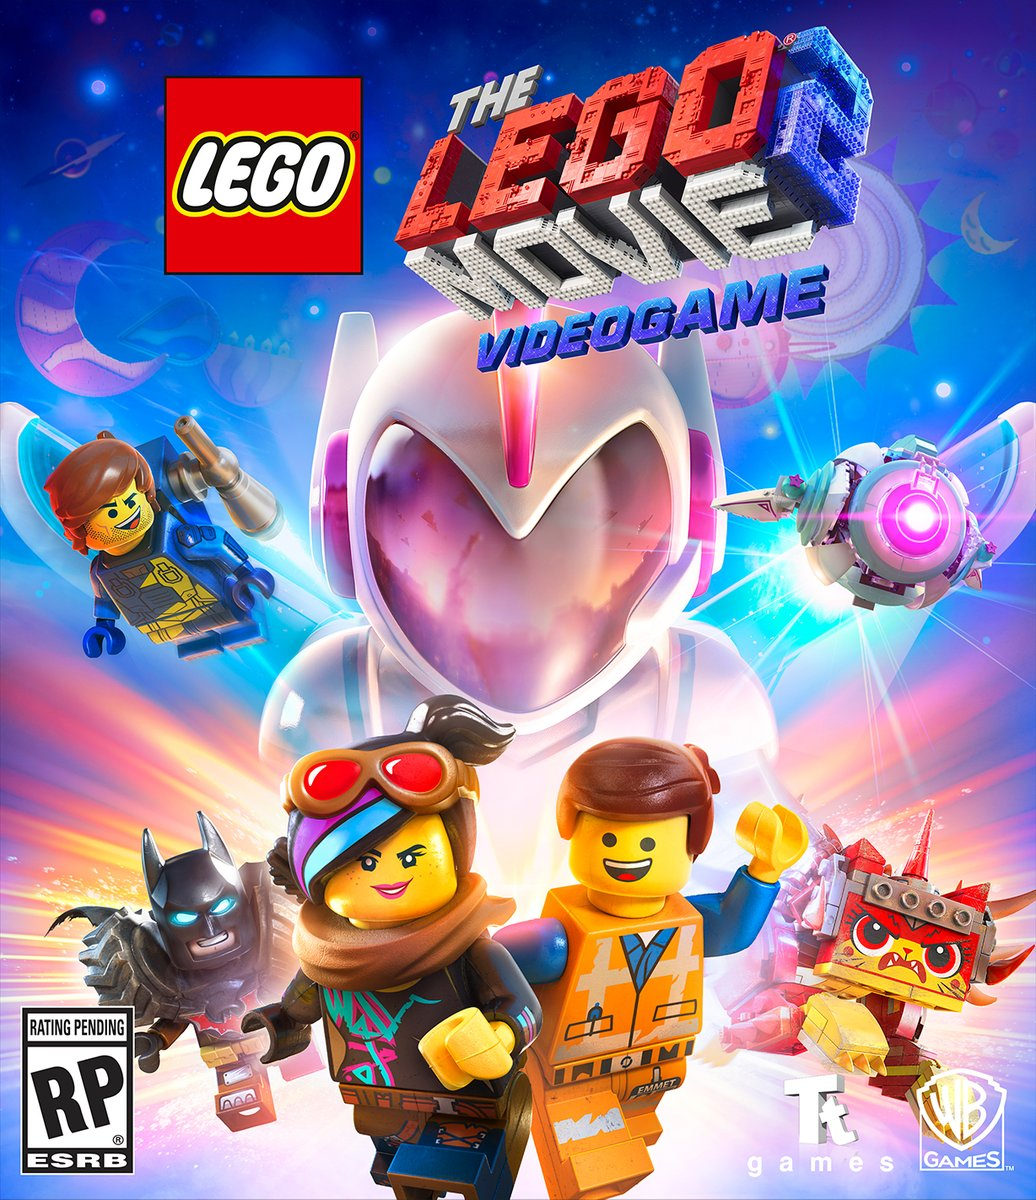 The LEGO Movie 2 Videogame Announced For Switch Nintendo